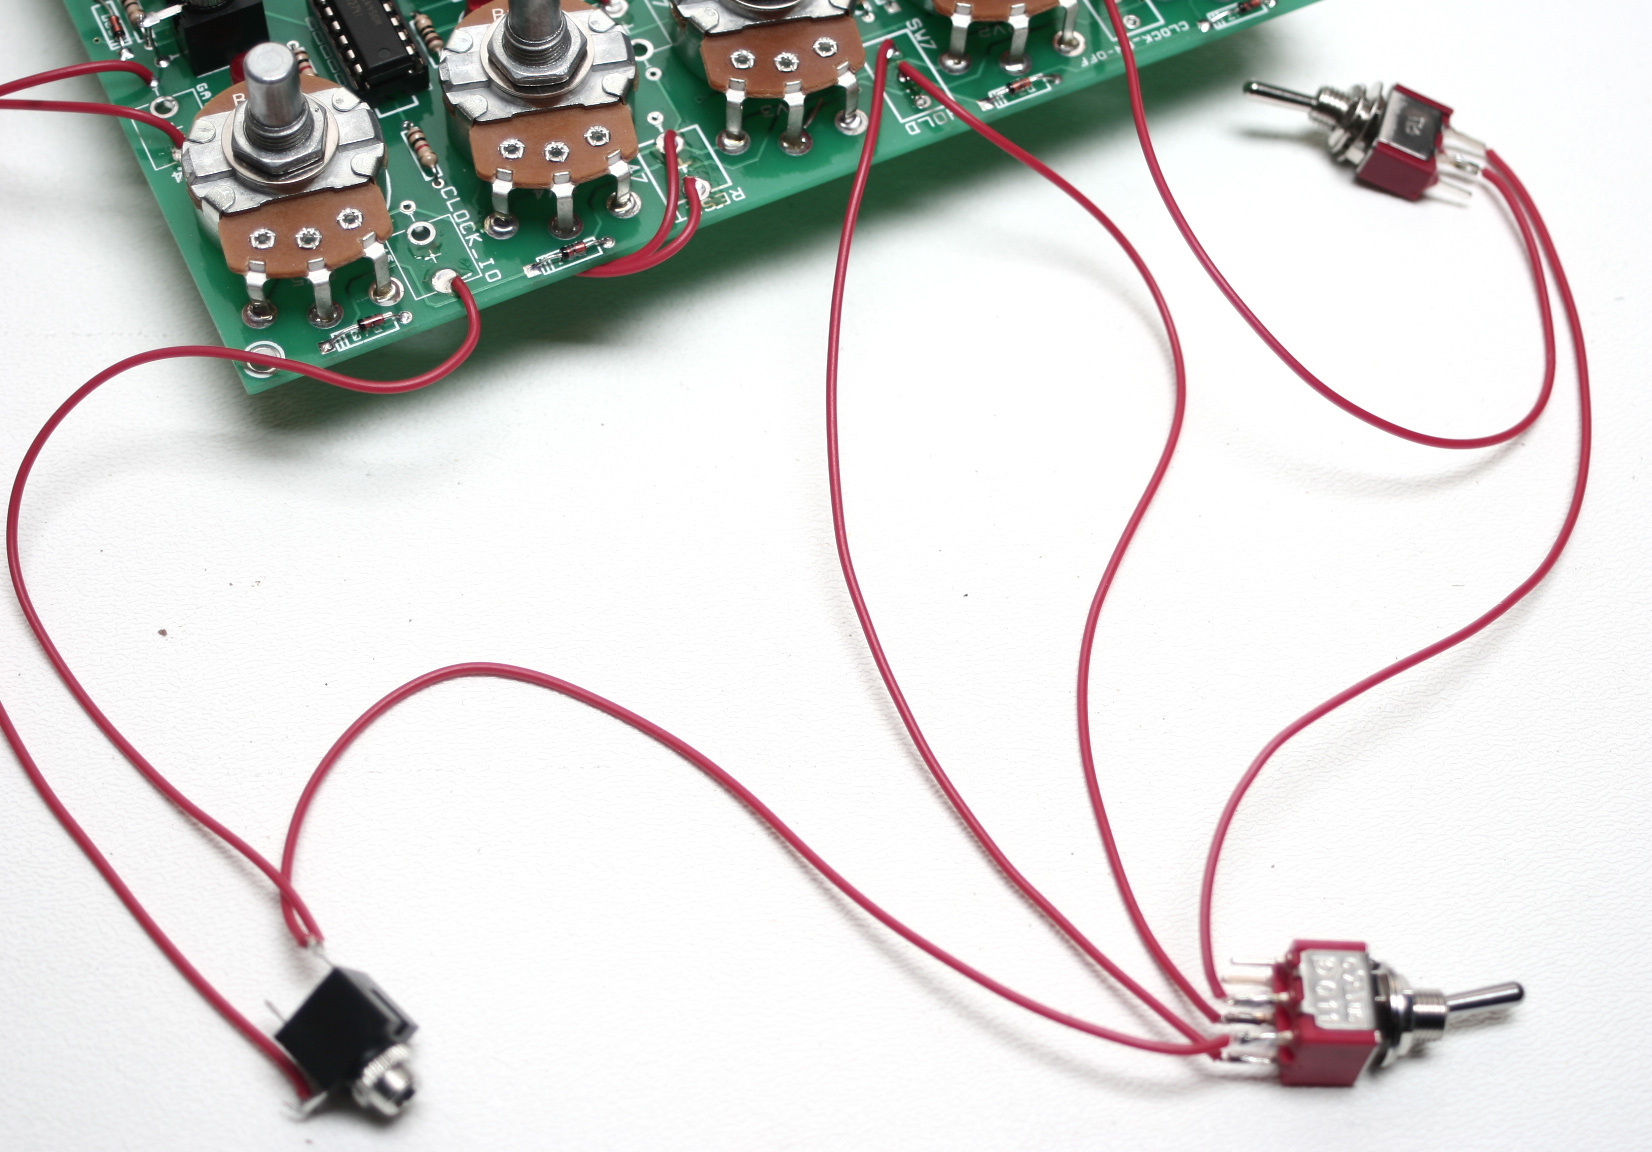 Dpdt Switch Diagram As Well Spdt Switch Wiring Diagram Moreover Dpdt